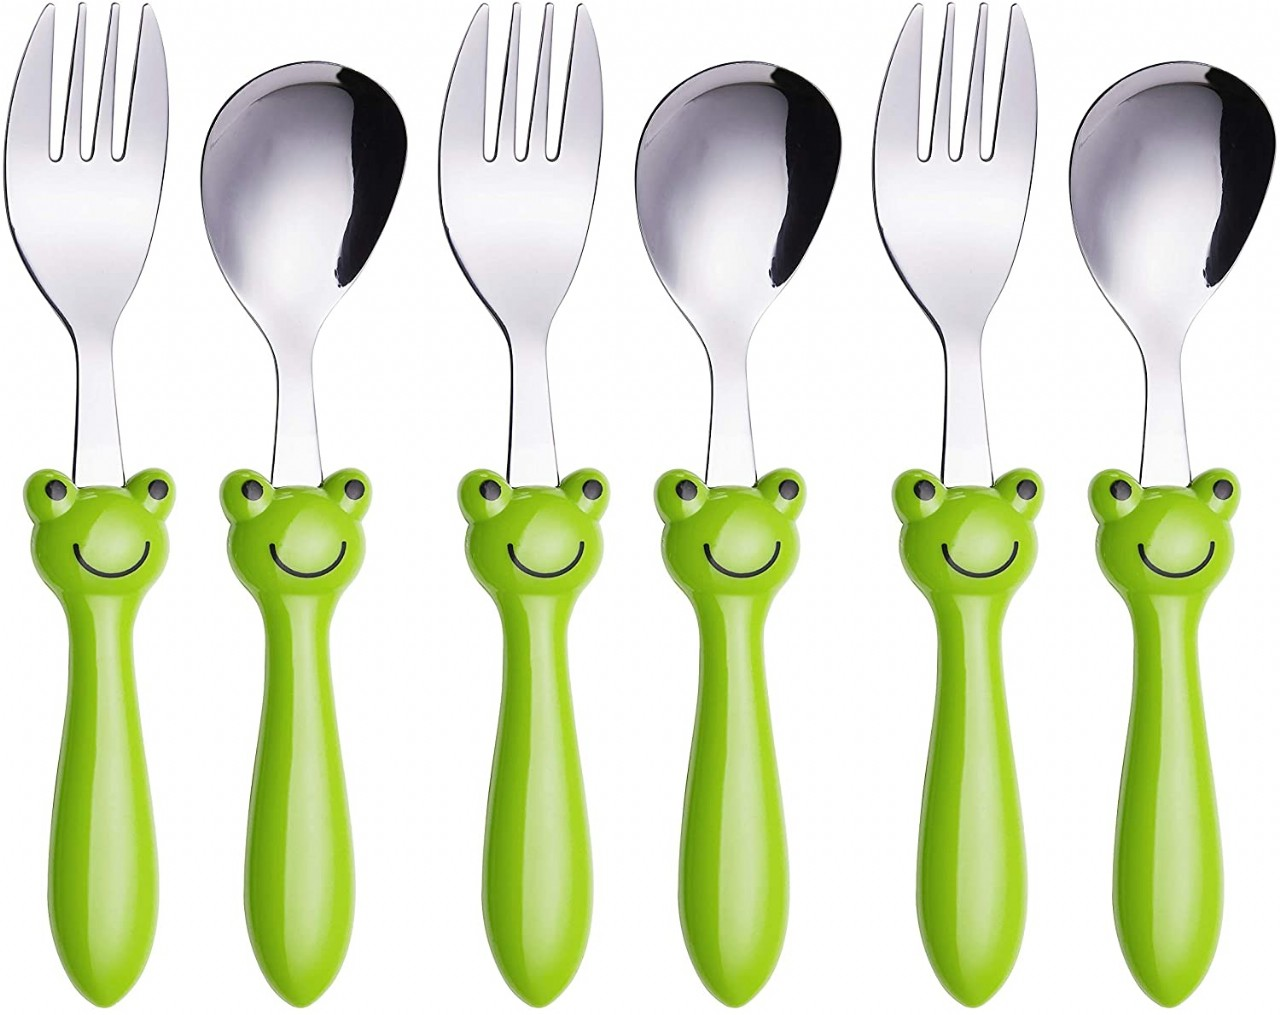 Exzact Childrens Flatware/Kid Silverware Set 6 Pieces Stainless Steel - 3 x Safe Forks, 3